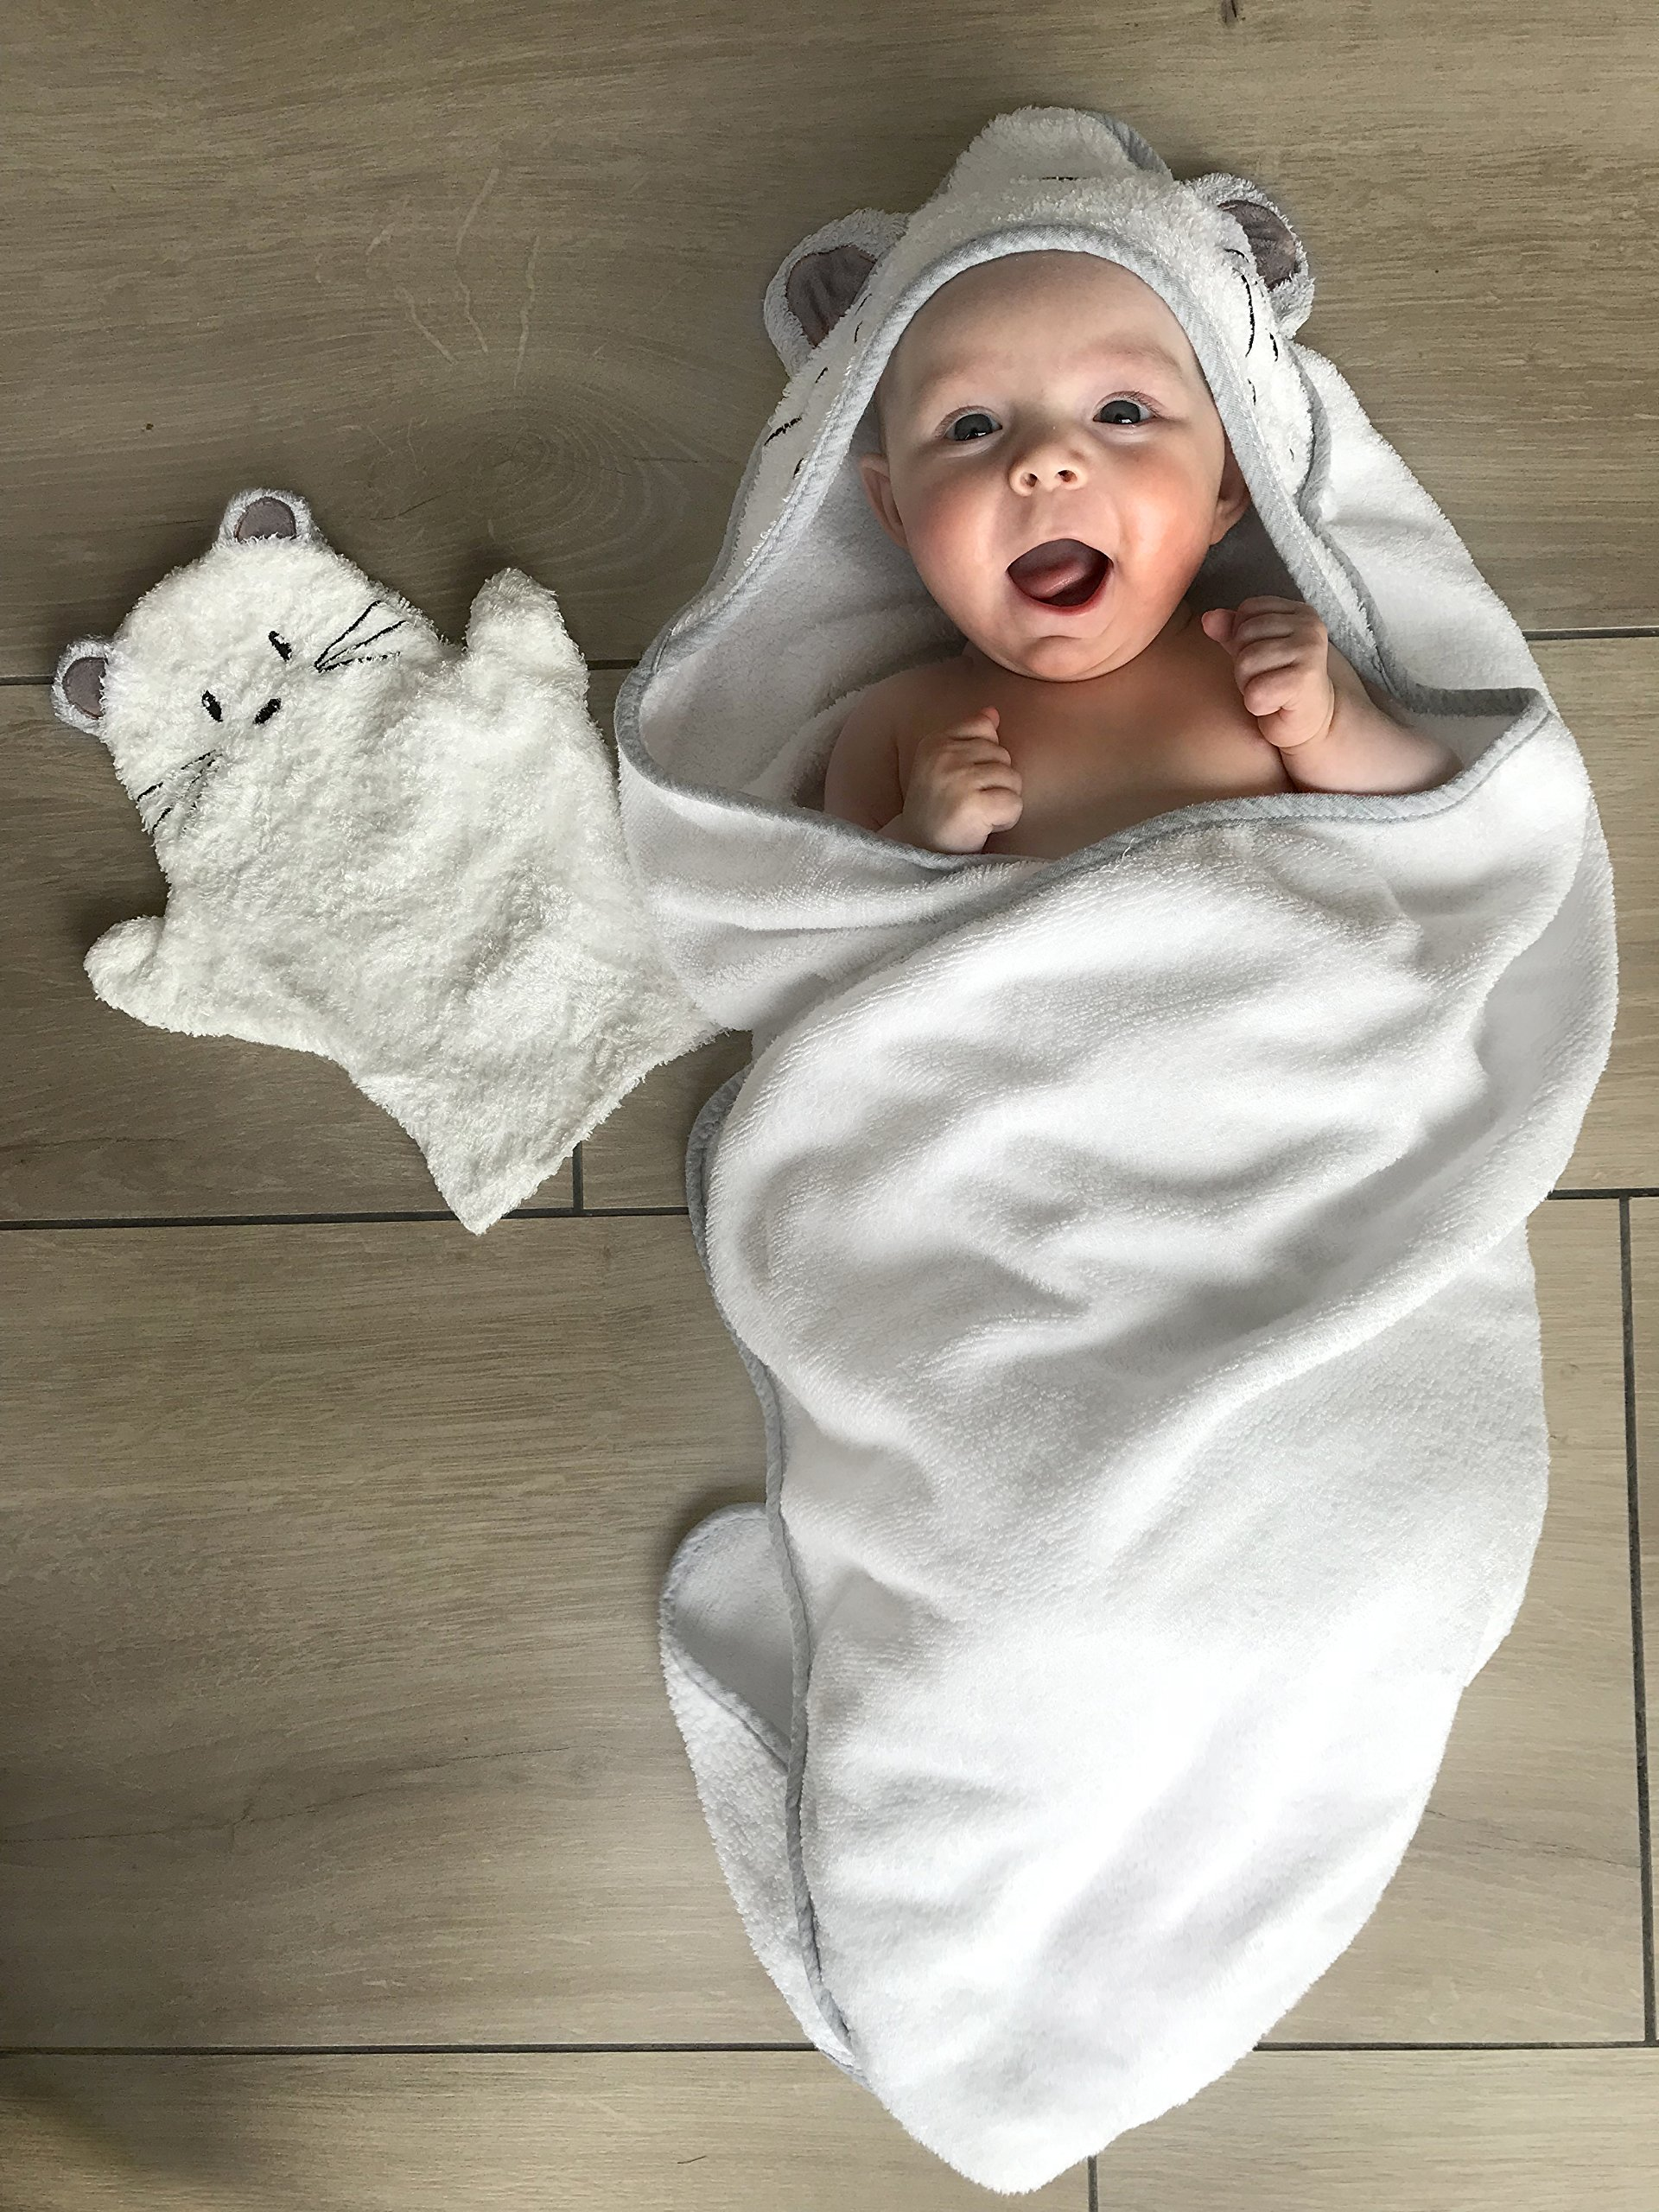 Baby Hooded Towel Gift Set | Organic Bamboo Extra Large 90cm x 90cm Mouse and Matching Mitten | Ultra Soft and Thick (500gsm) | Certified Organic - Best for Newborn Sensitive Skin, Eczema |For Newborn to Toddlers to Kids of 5 Years | Perfec